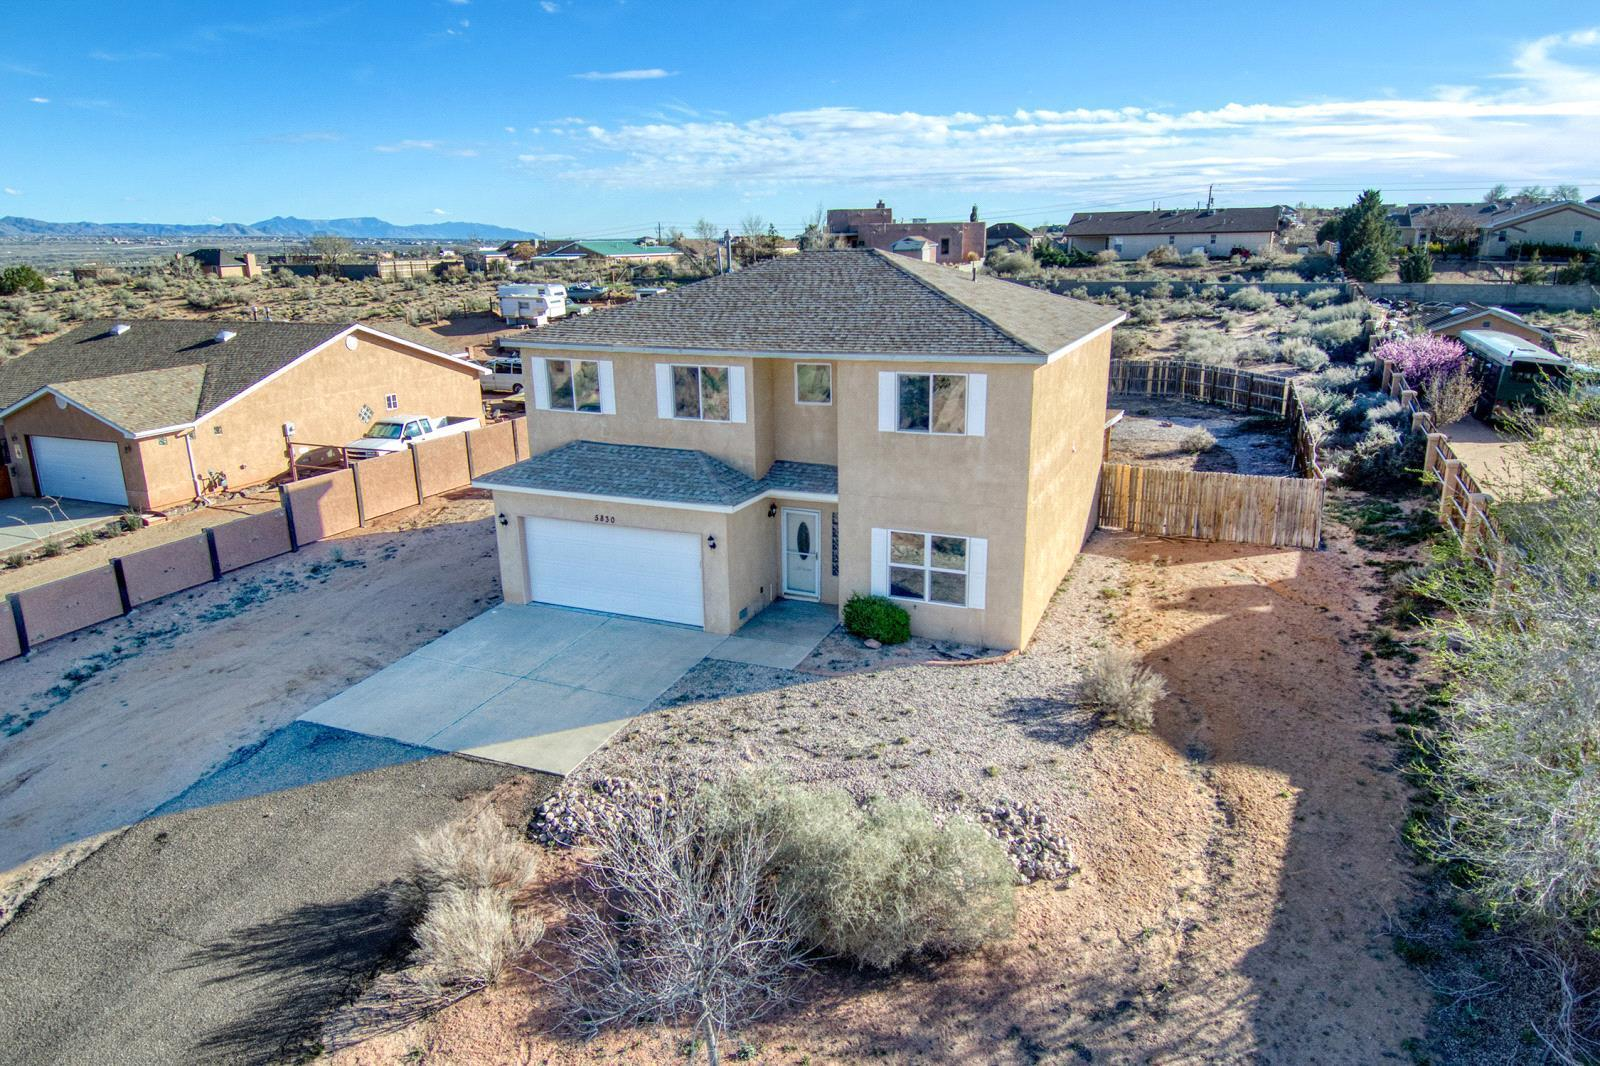 5830 NE Miller Road, Rio Rancho in Sandoval County, NM 87144 Home for Sale